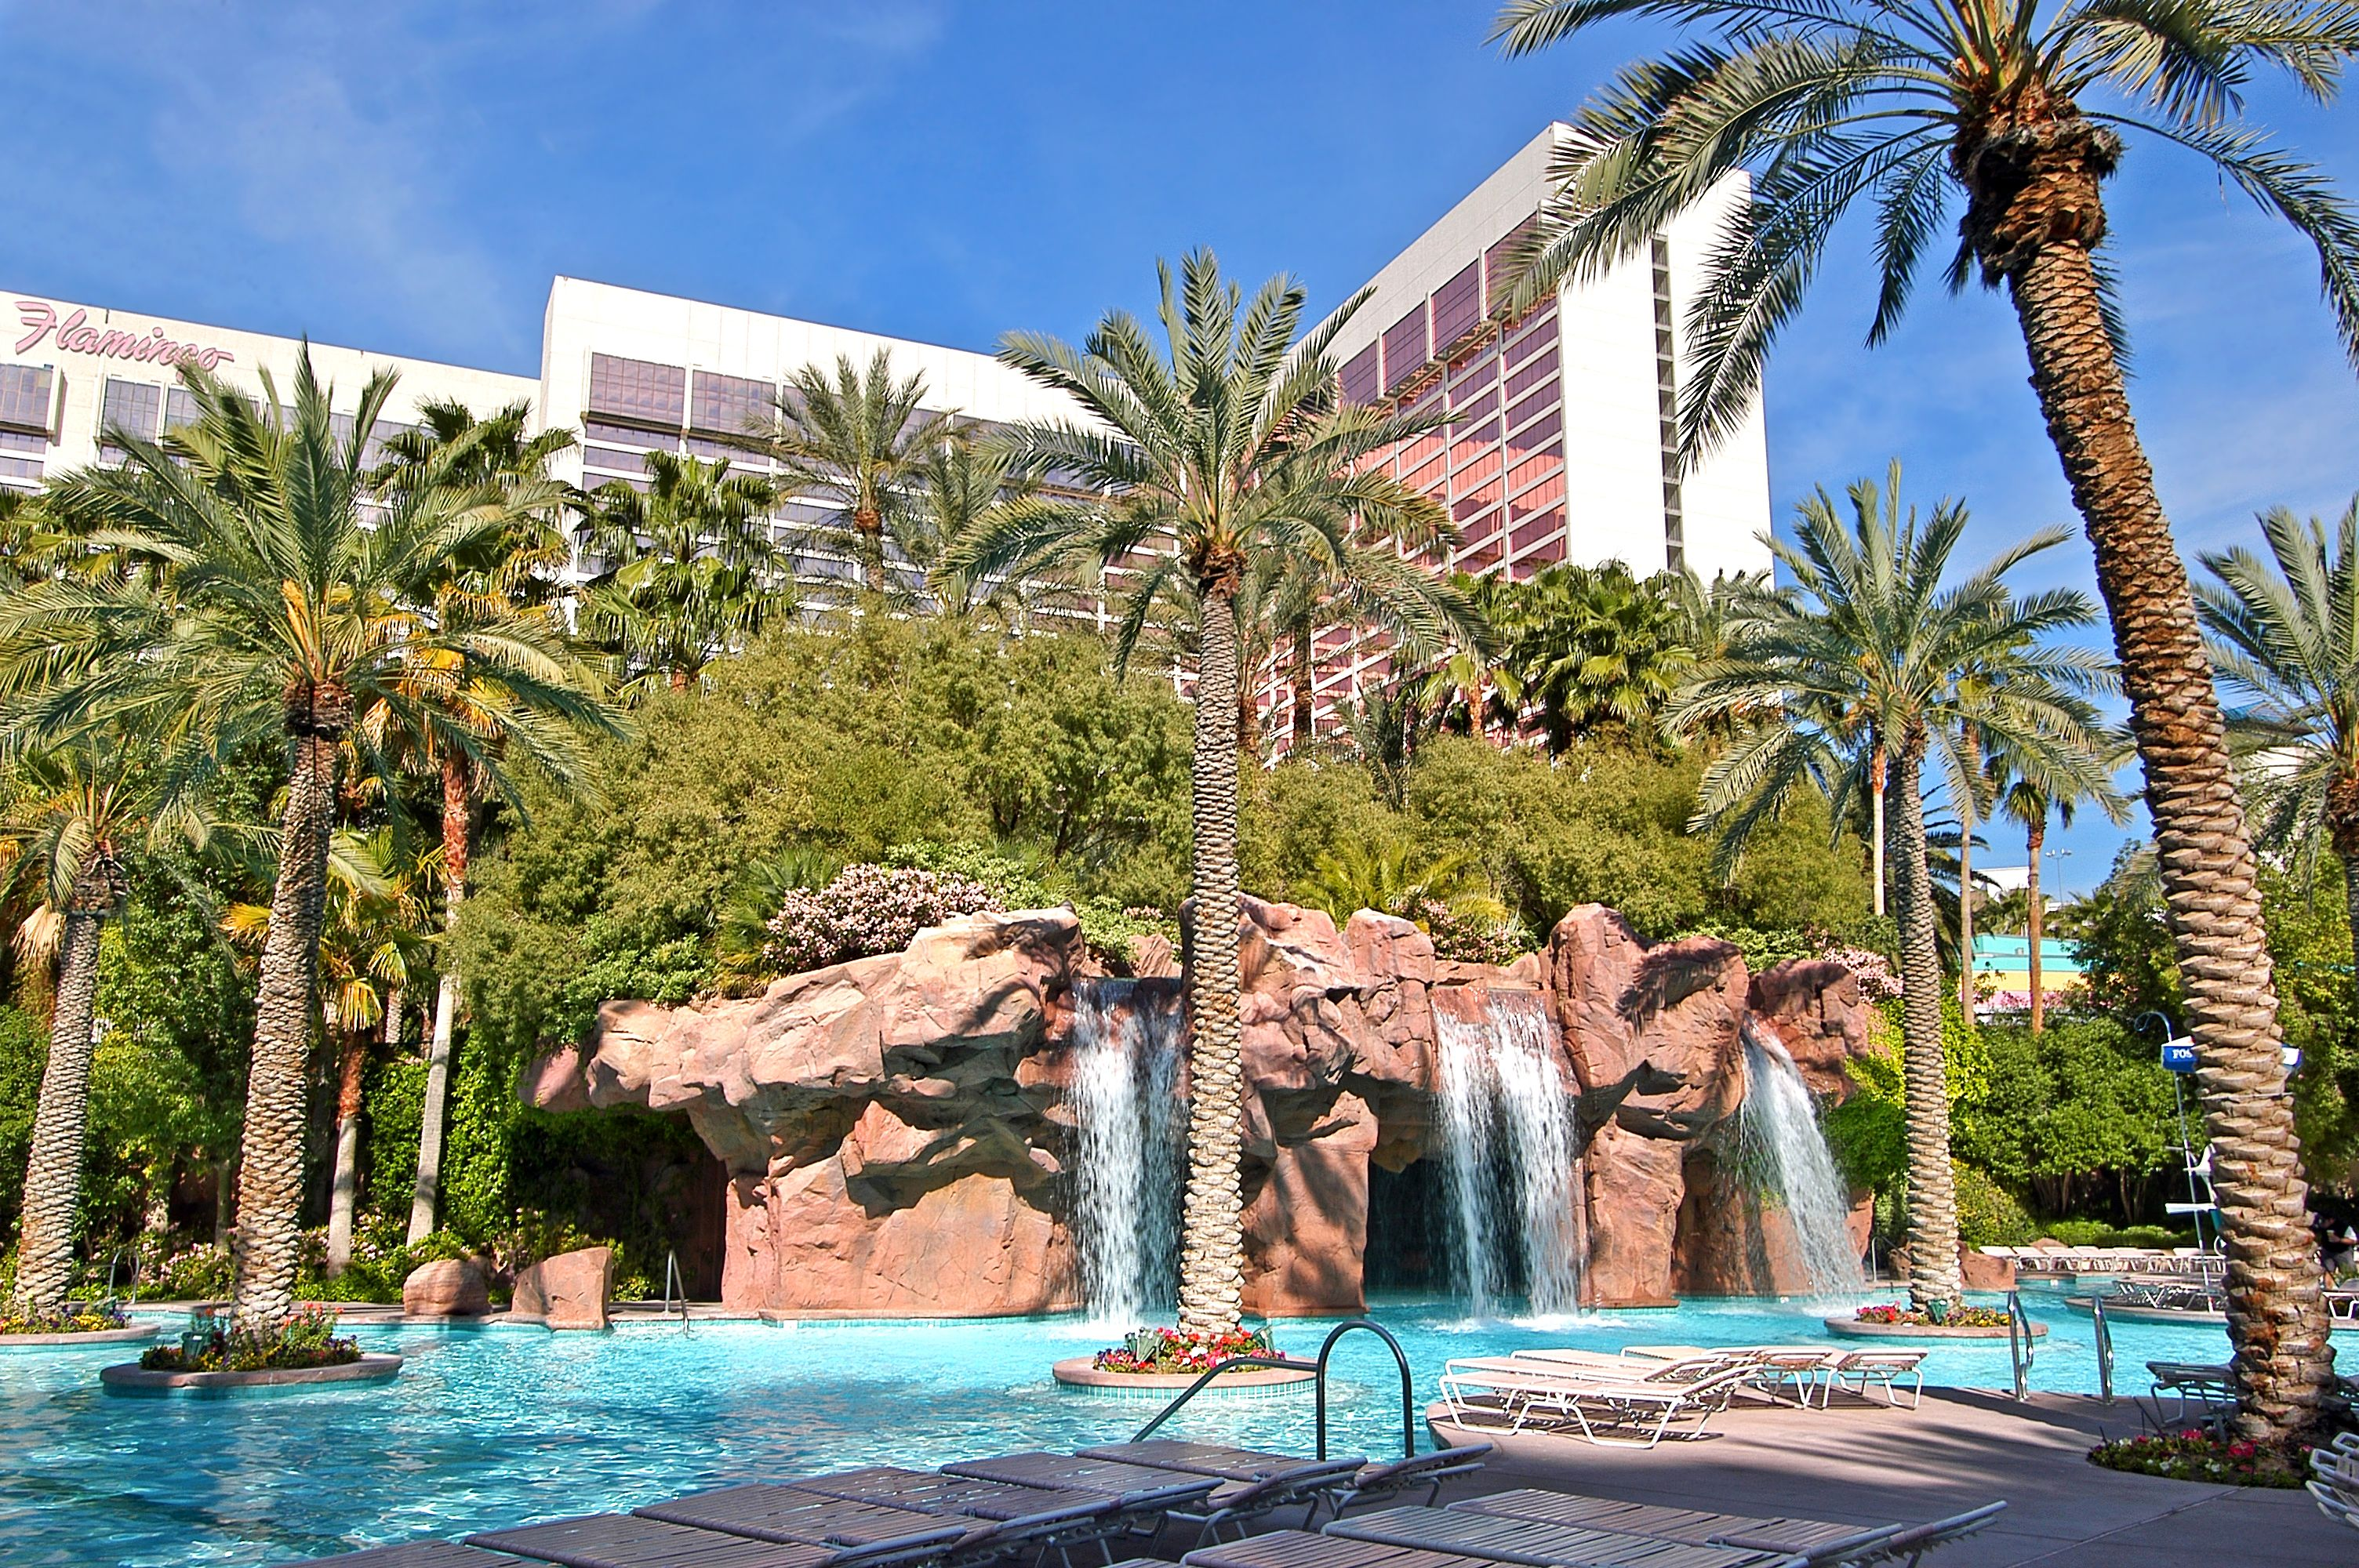 Best Pools In Las Vegas Best Pools In Vegas Las Vegas Hotels Las Vegas Pool